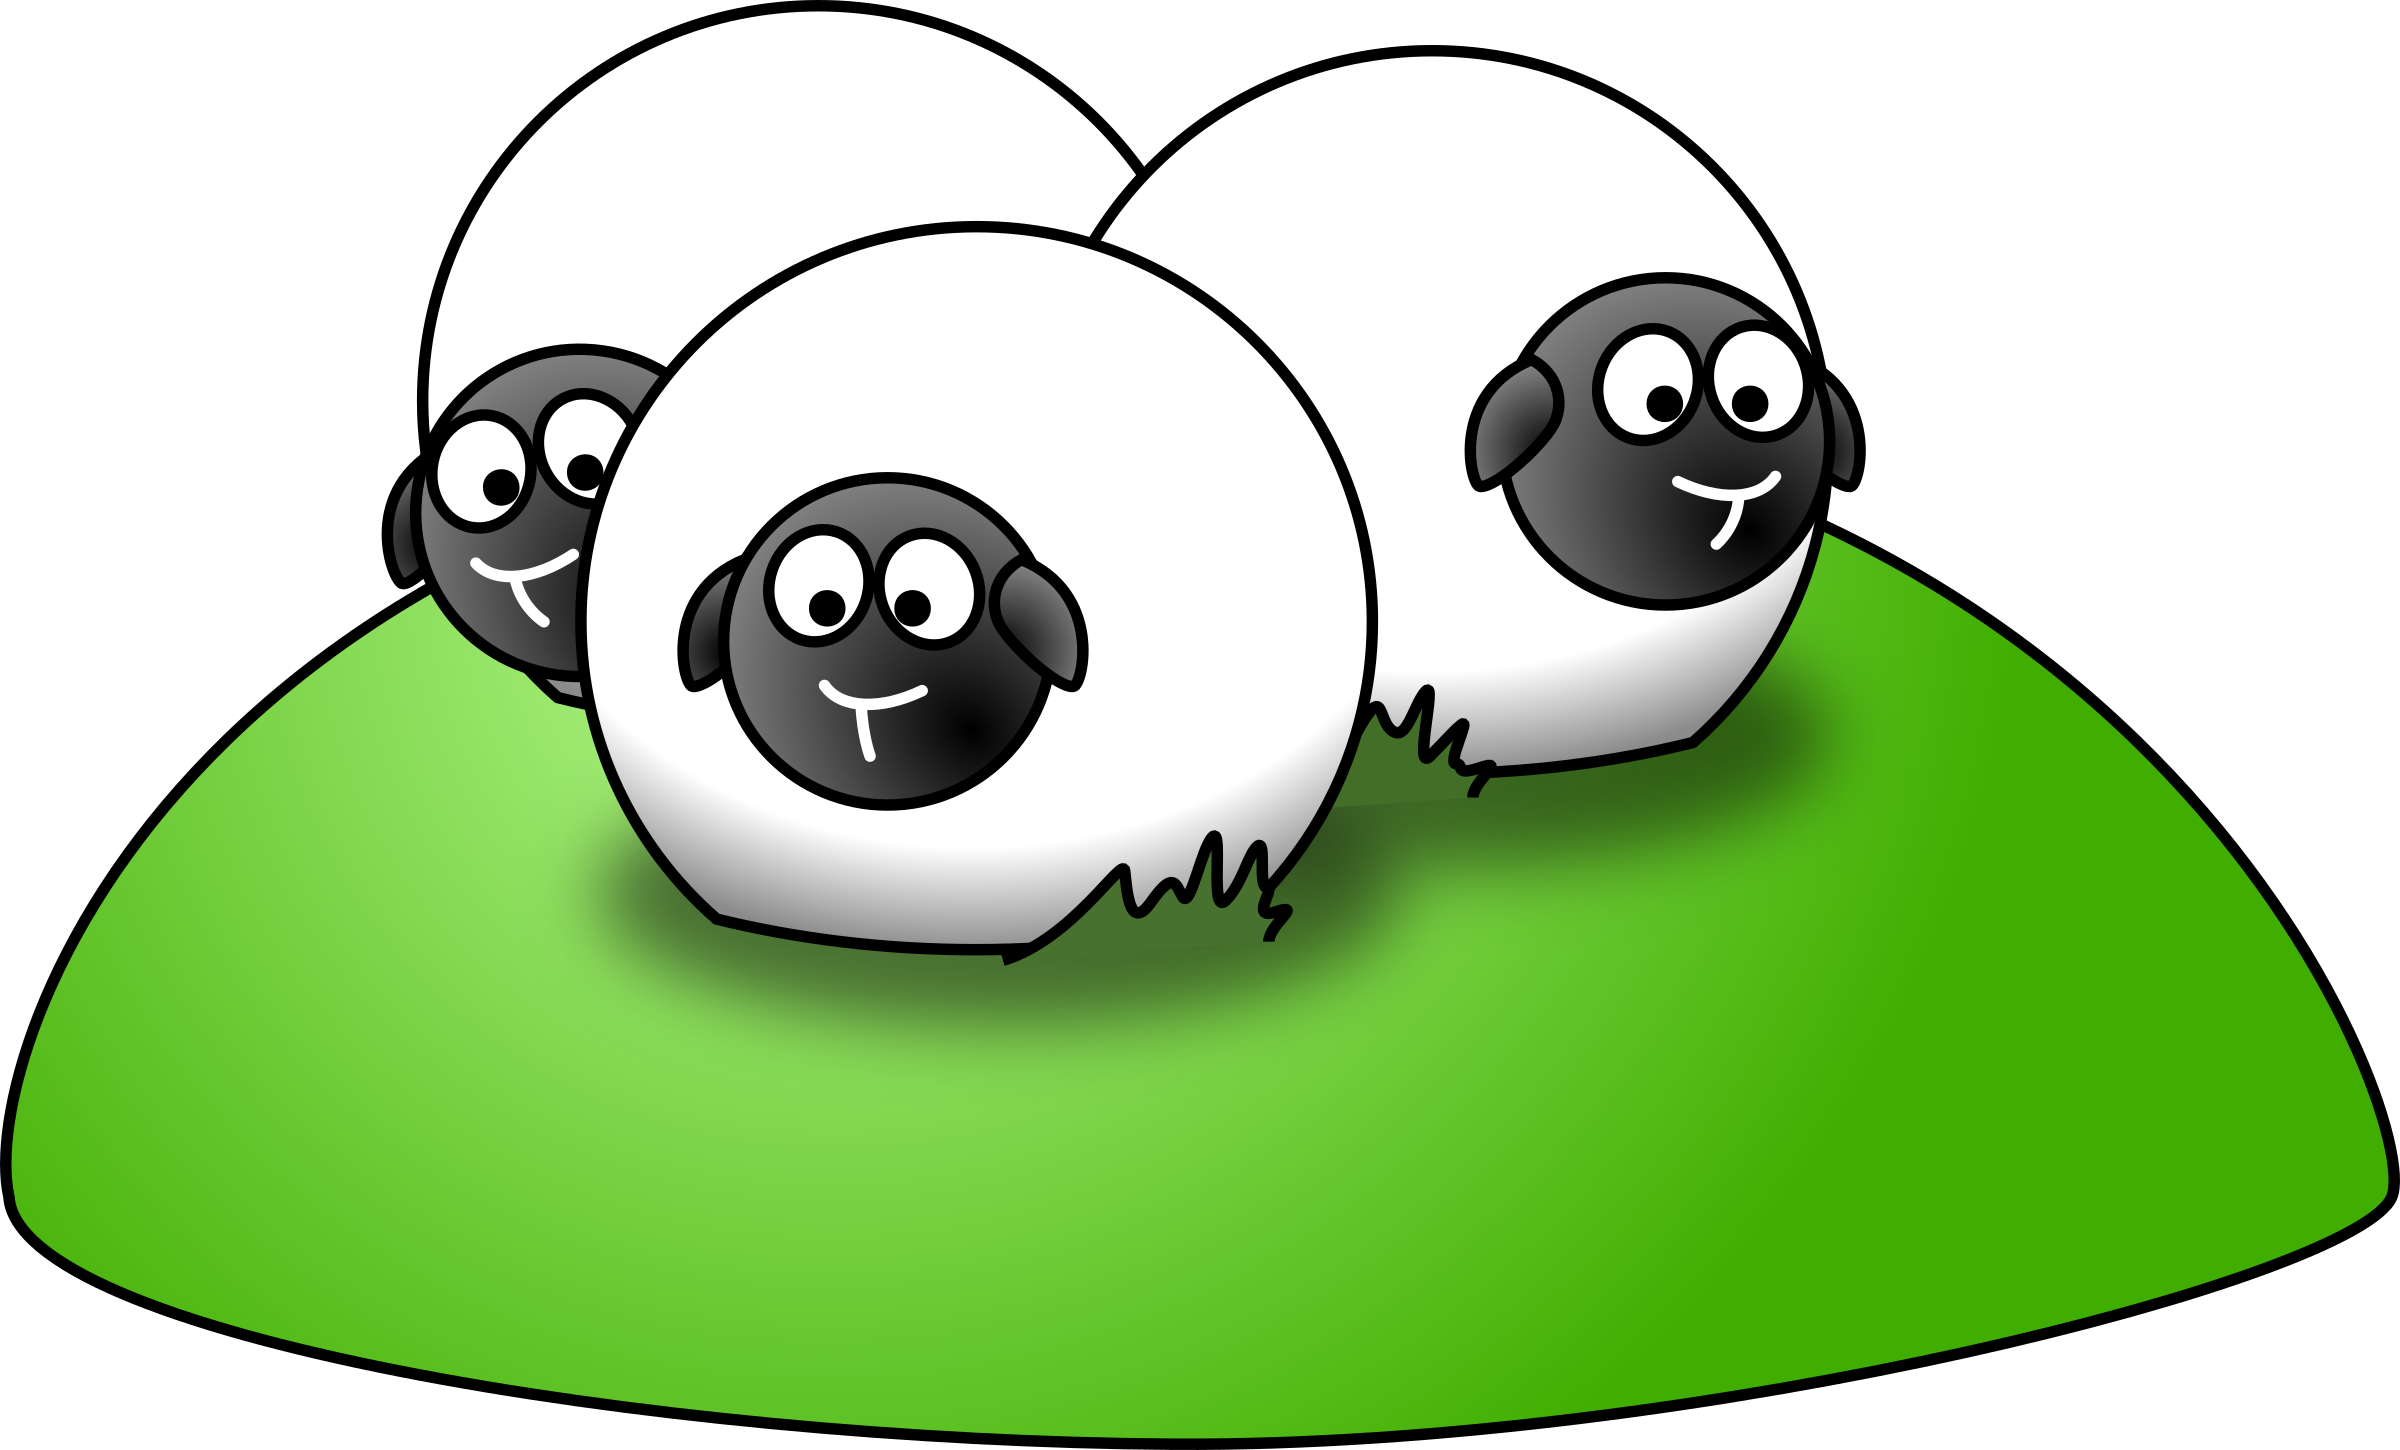 Simple cartoon sheep by lemmling